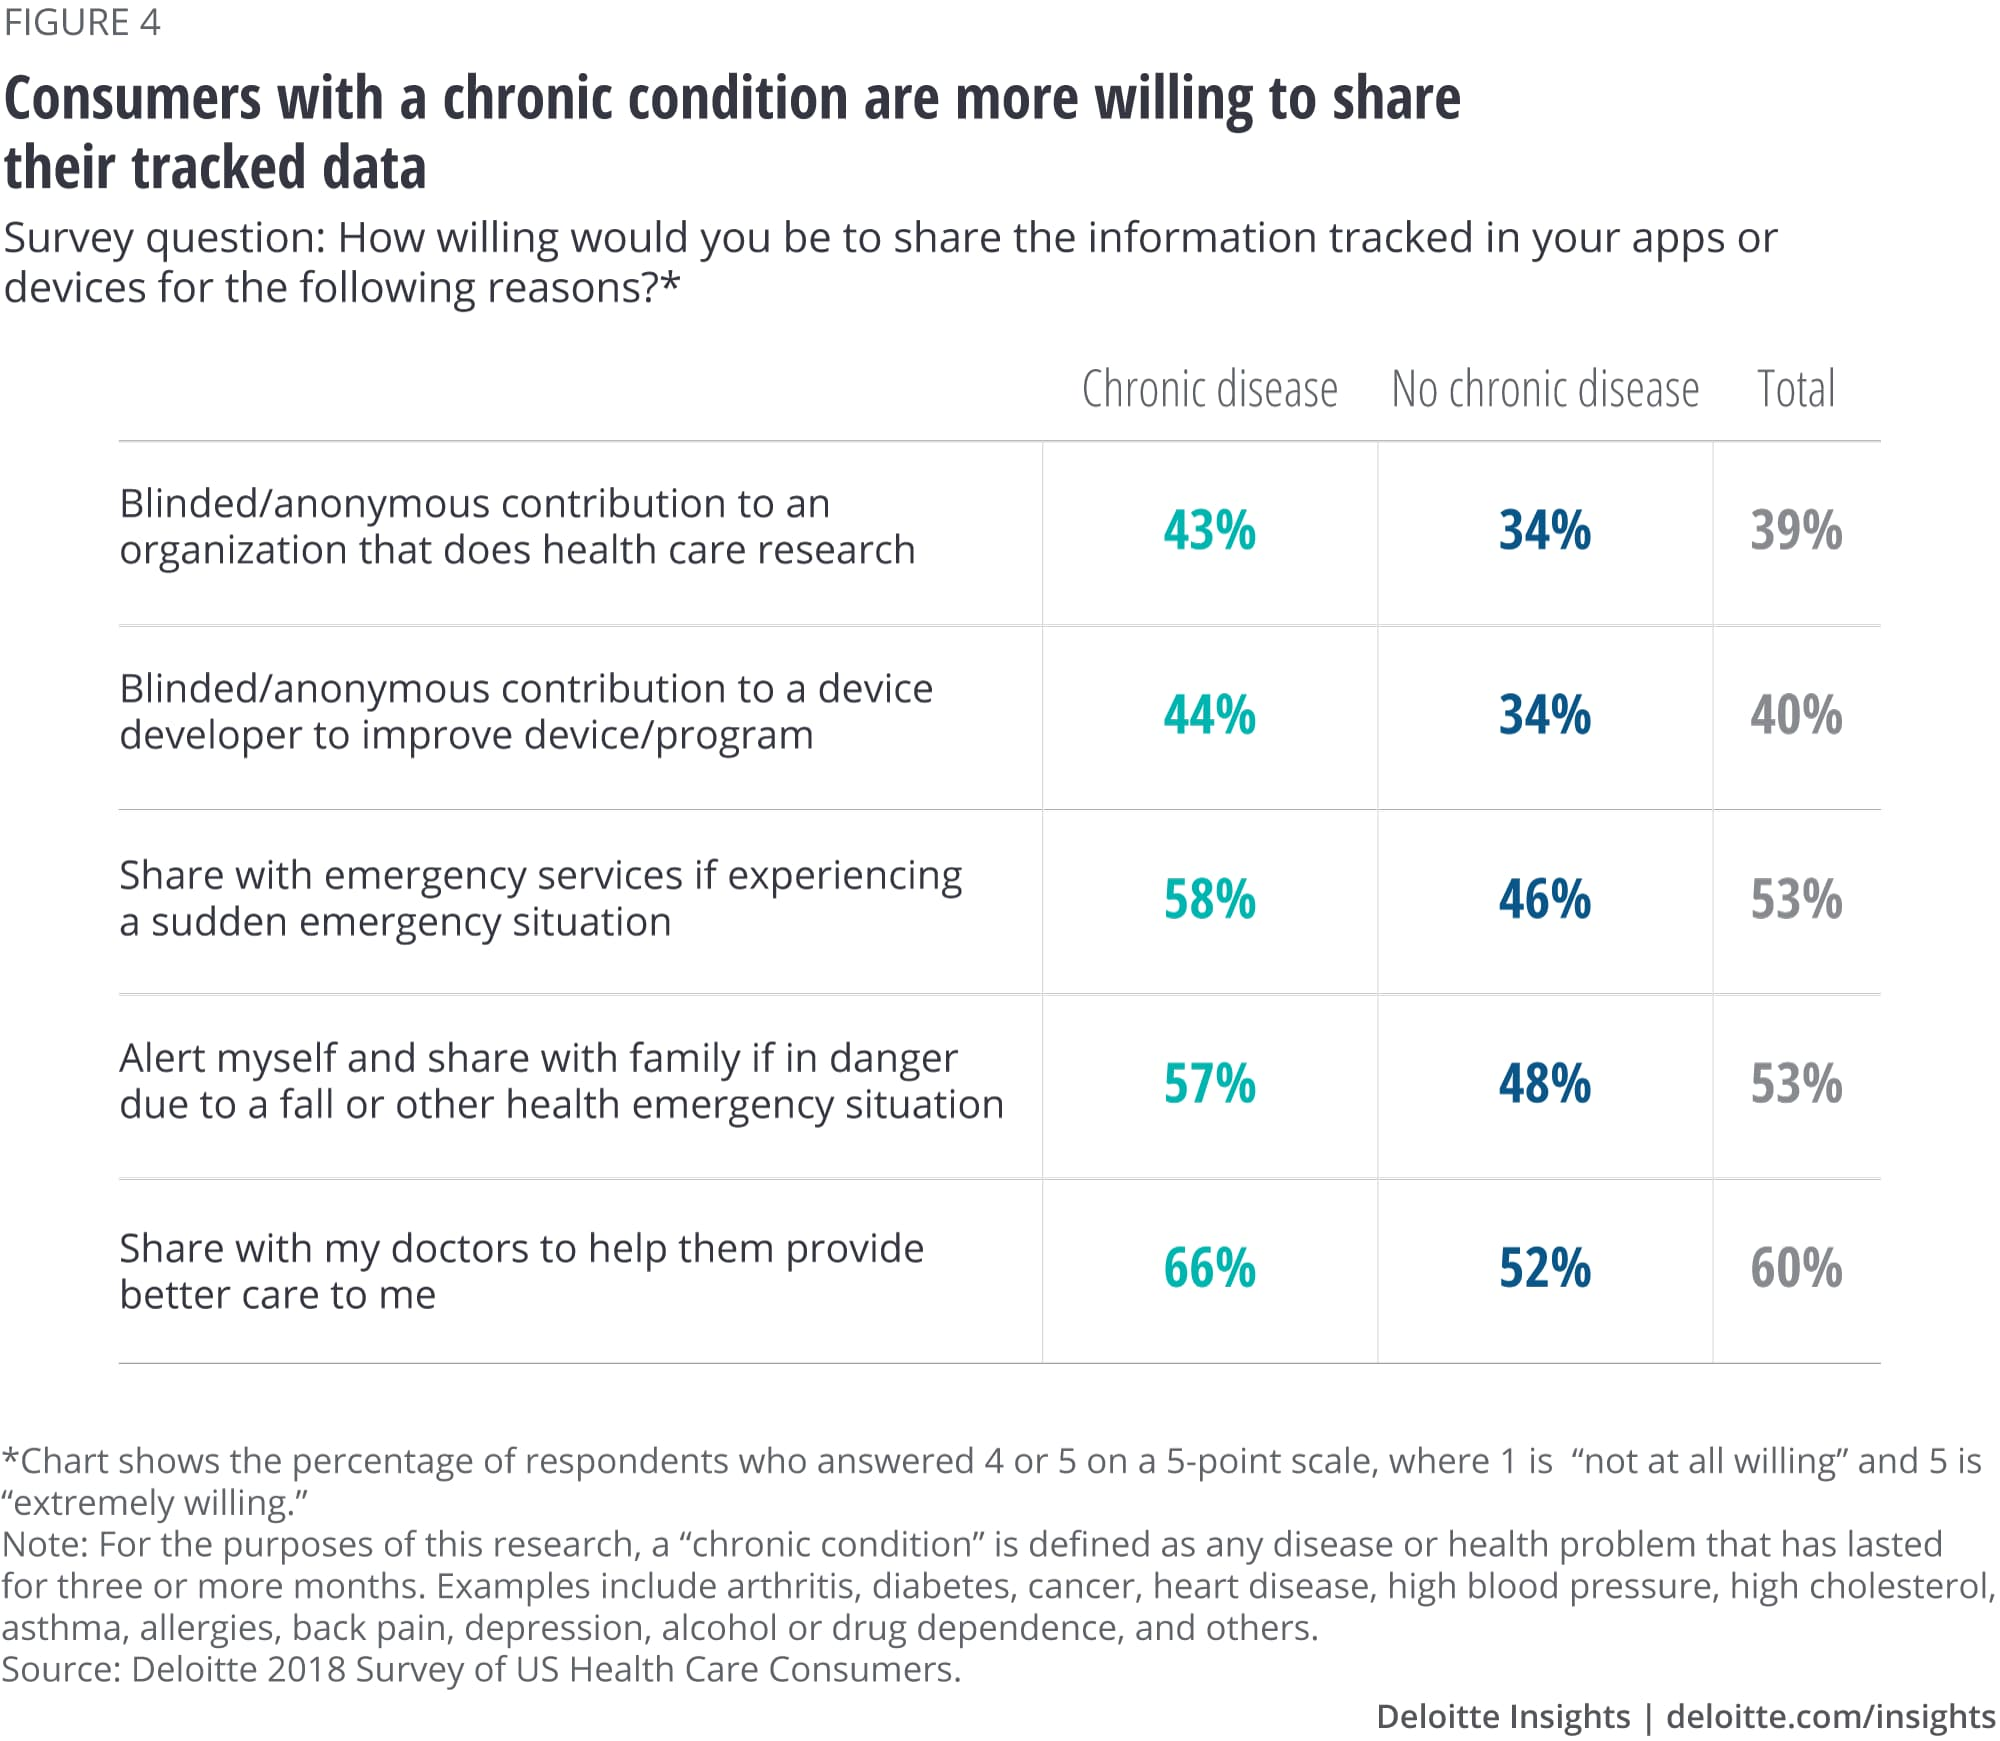 Consumers with a chronic condition are more willing to share their tracked data